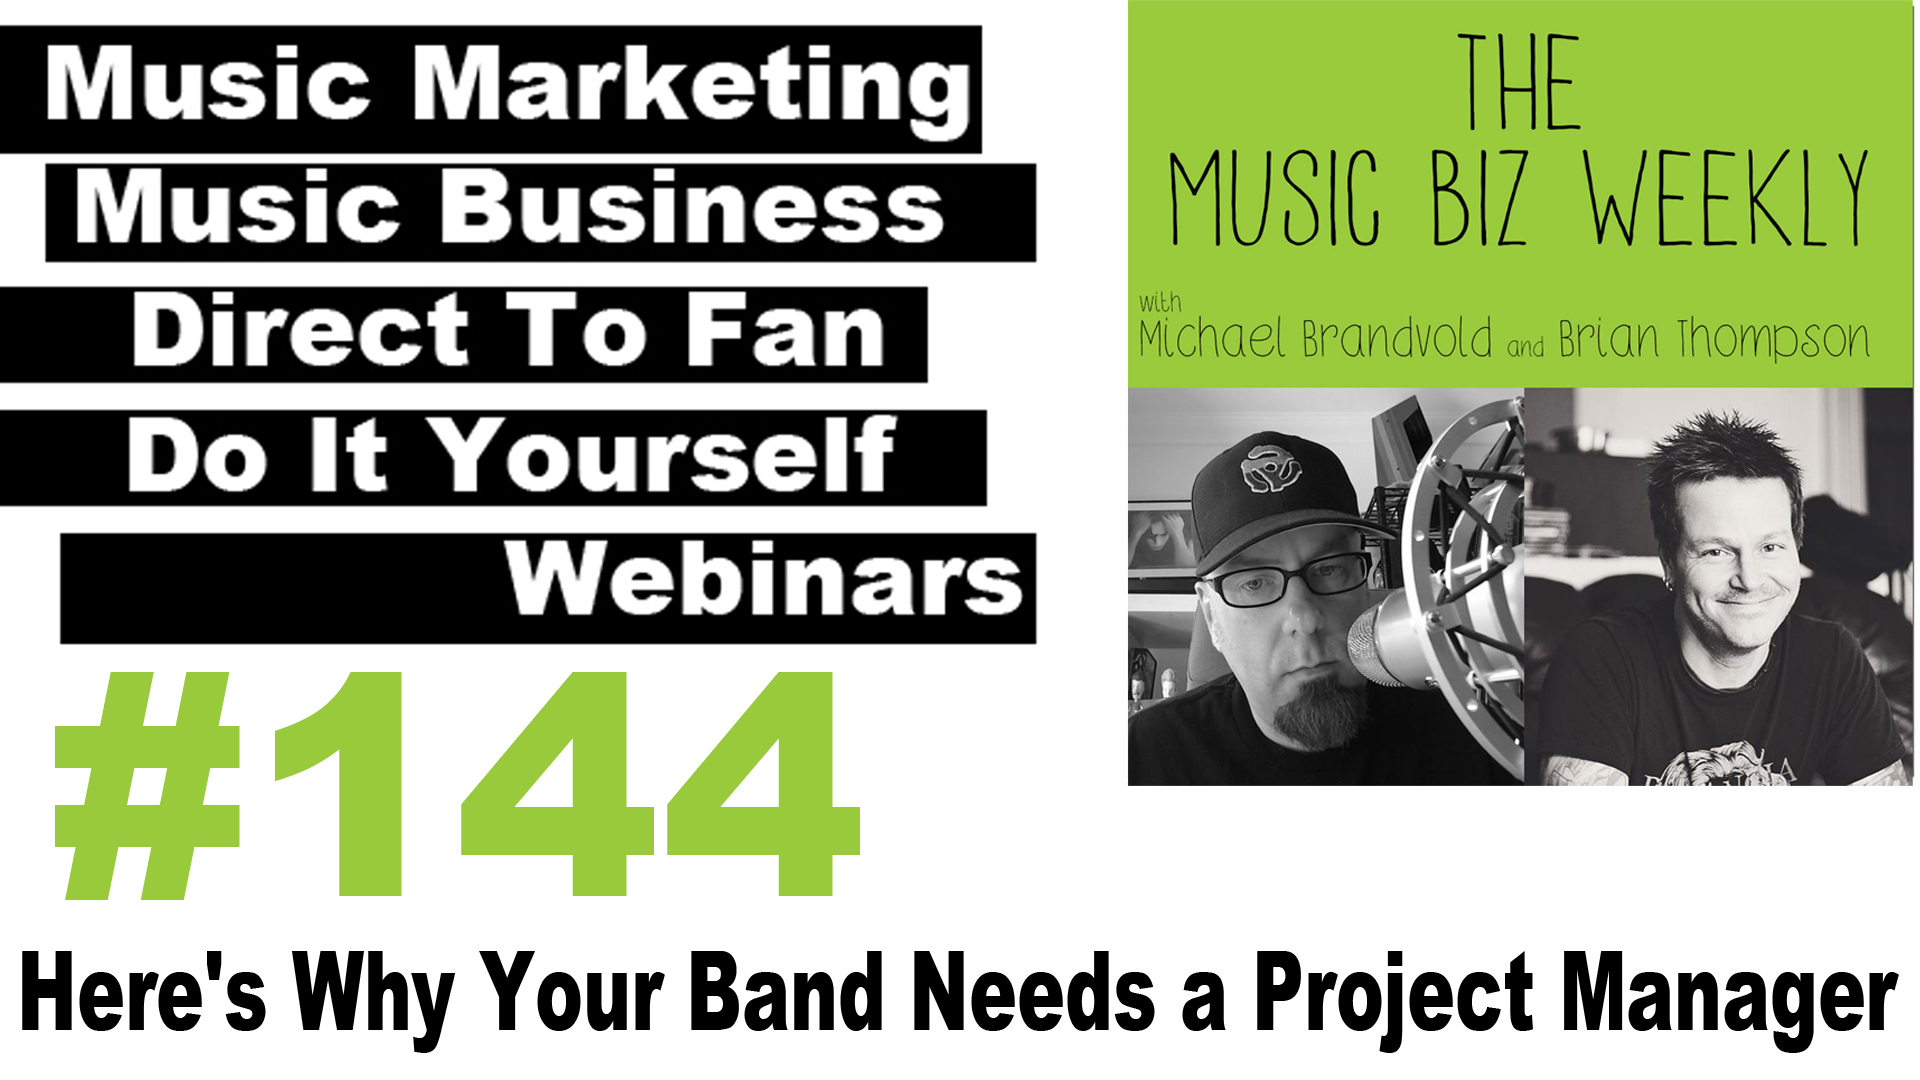 Ep. 144 Here's Why Your Band Needs a Project Manager on The Music Biz Weekly